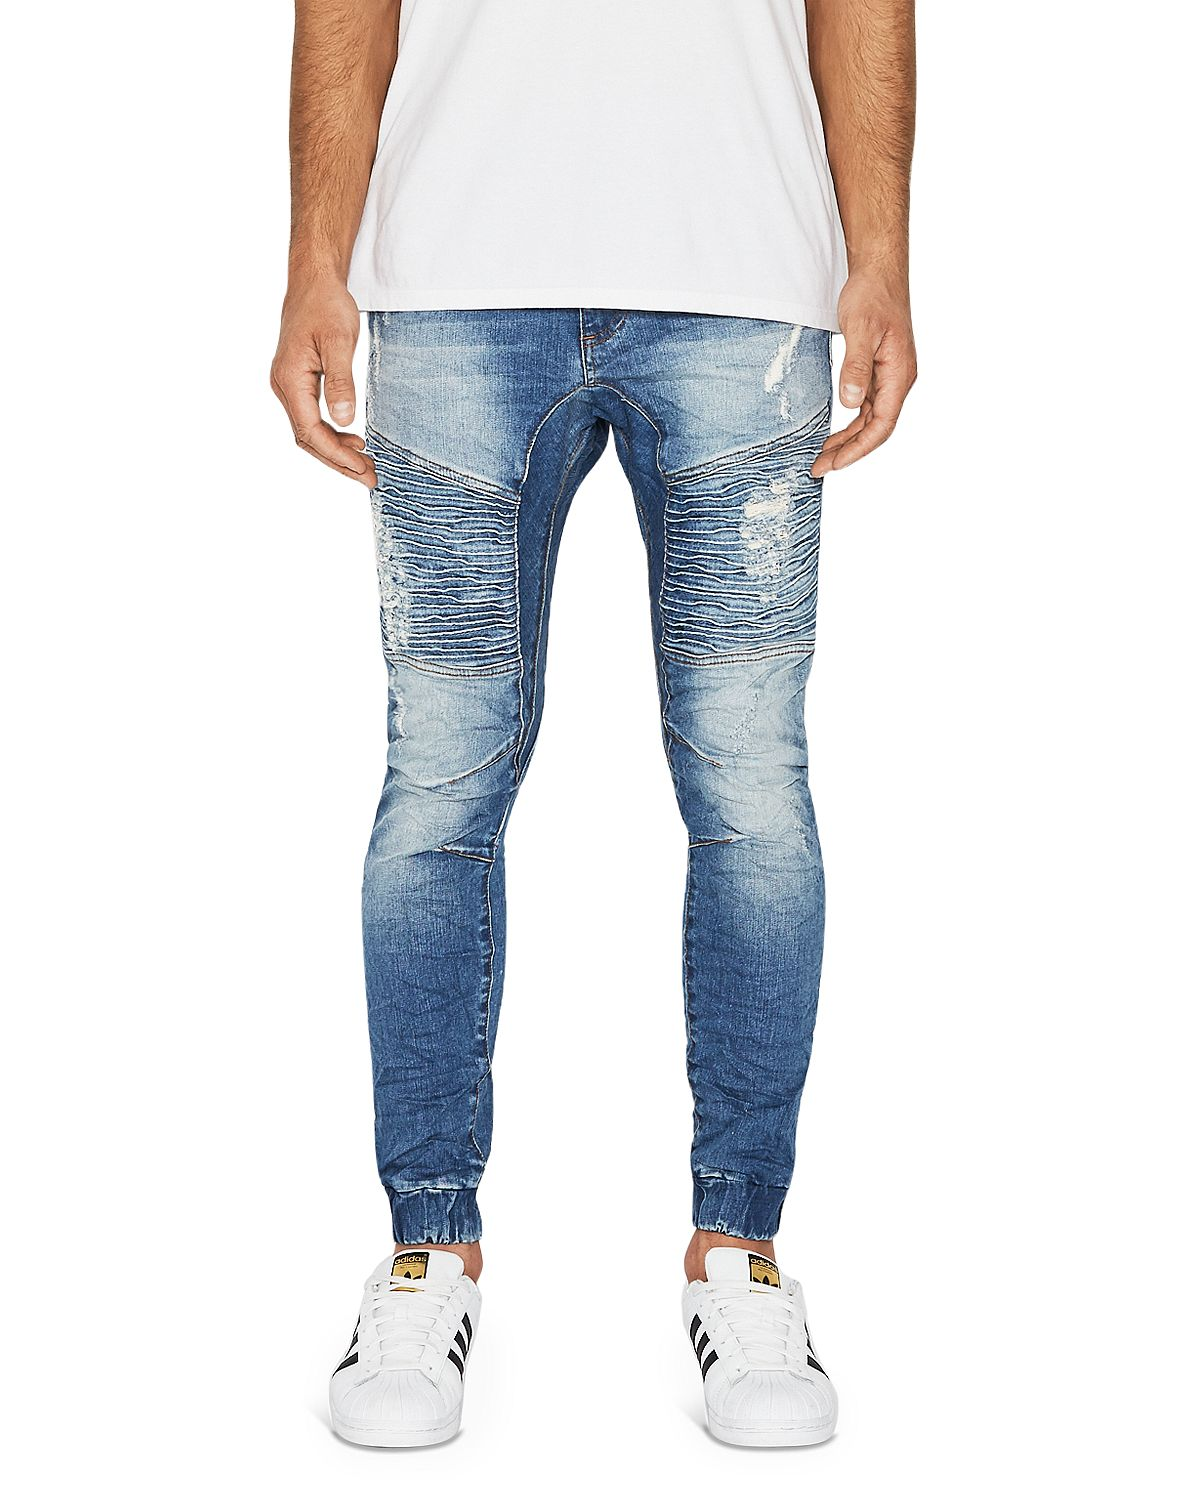 Nxp Destroyer Tapered Fit Jeans In Blue Trash